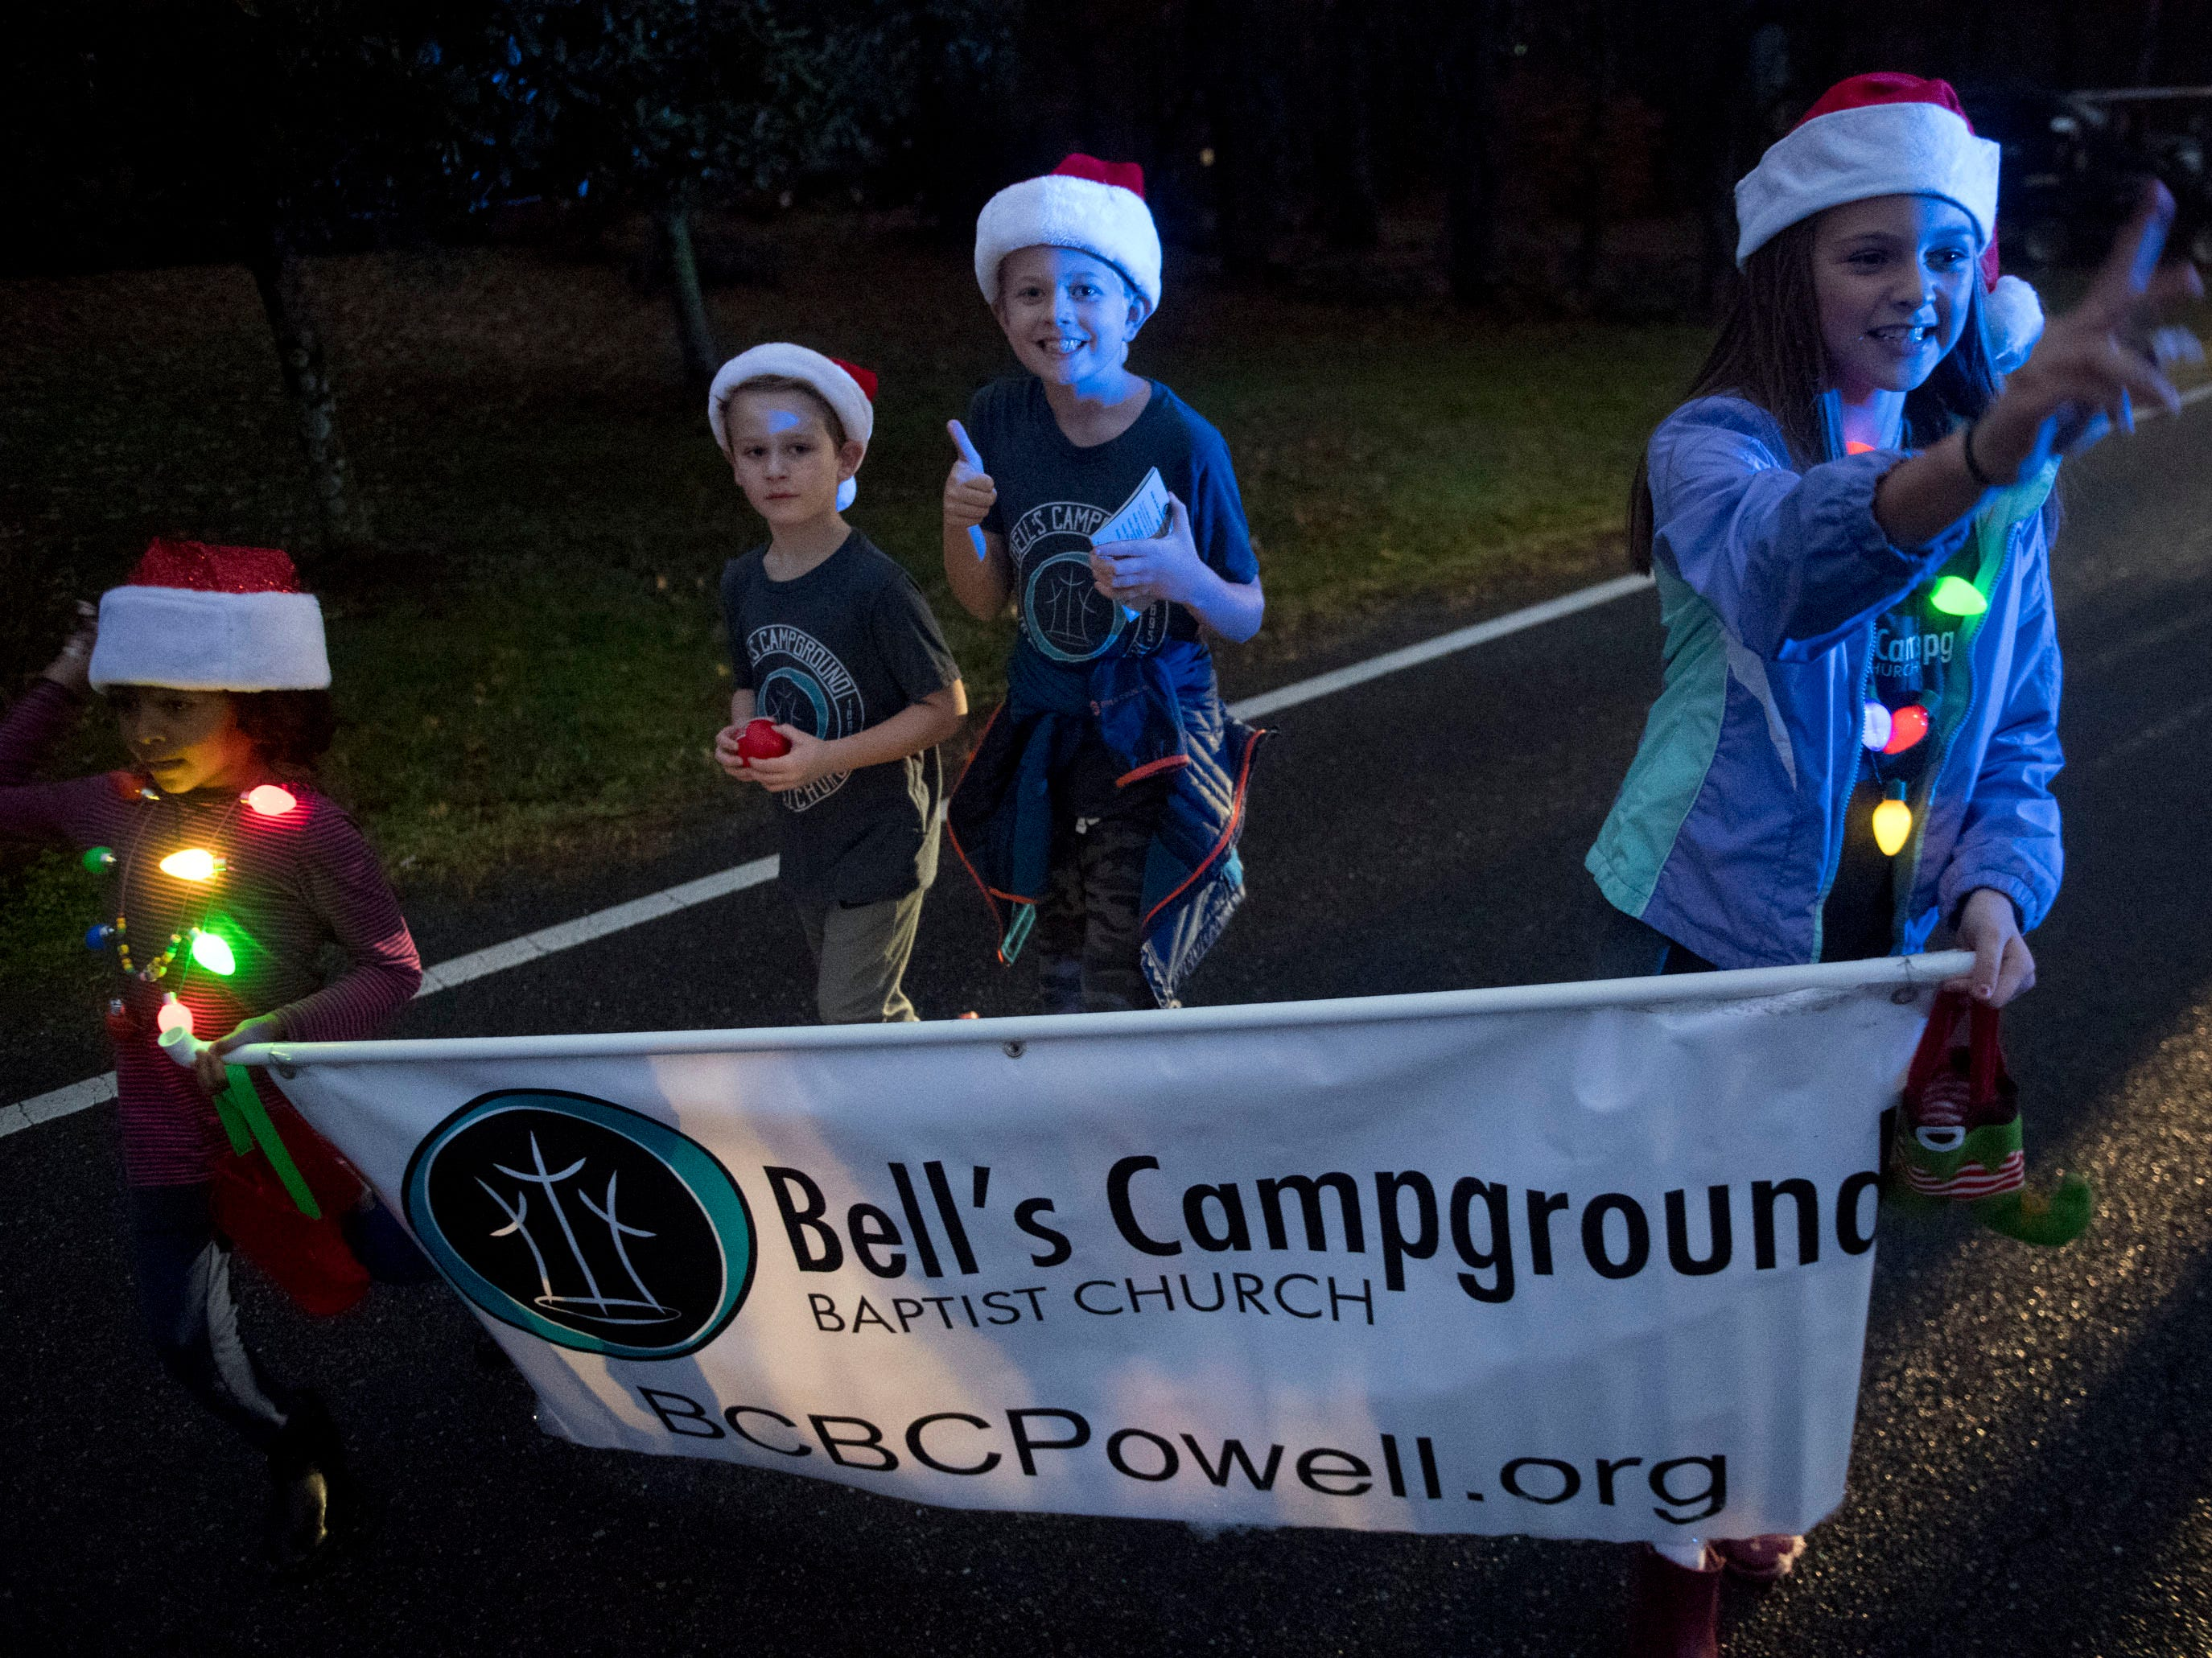 Bell's Campground Baptist Church in the Powell Lions Club Christmas Parade on Saturday, December 1, 2018.